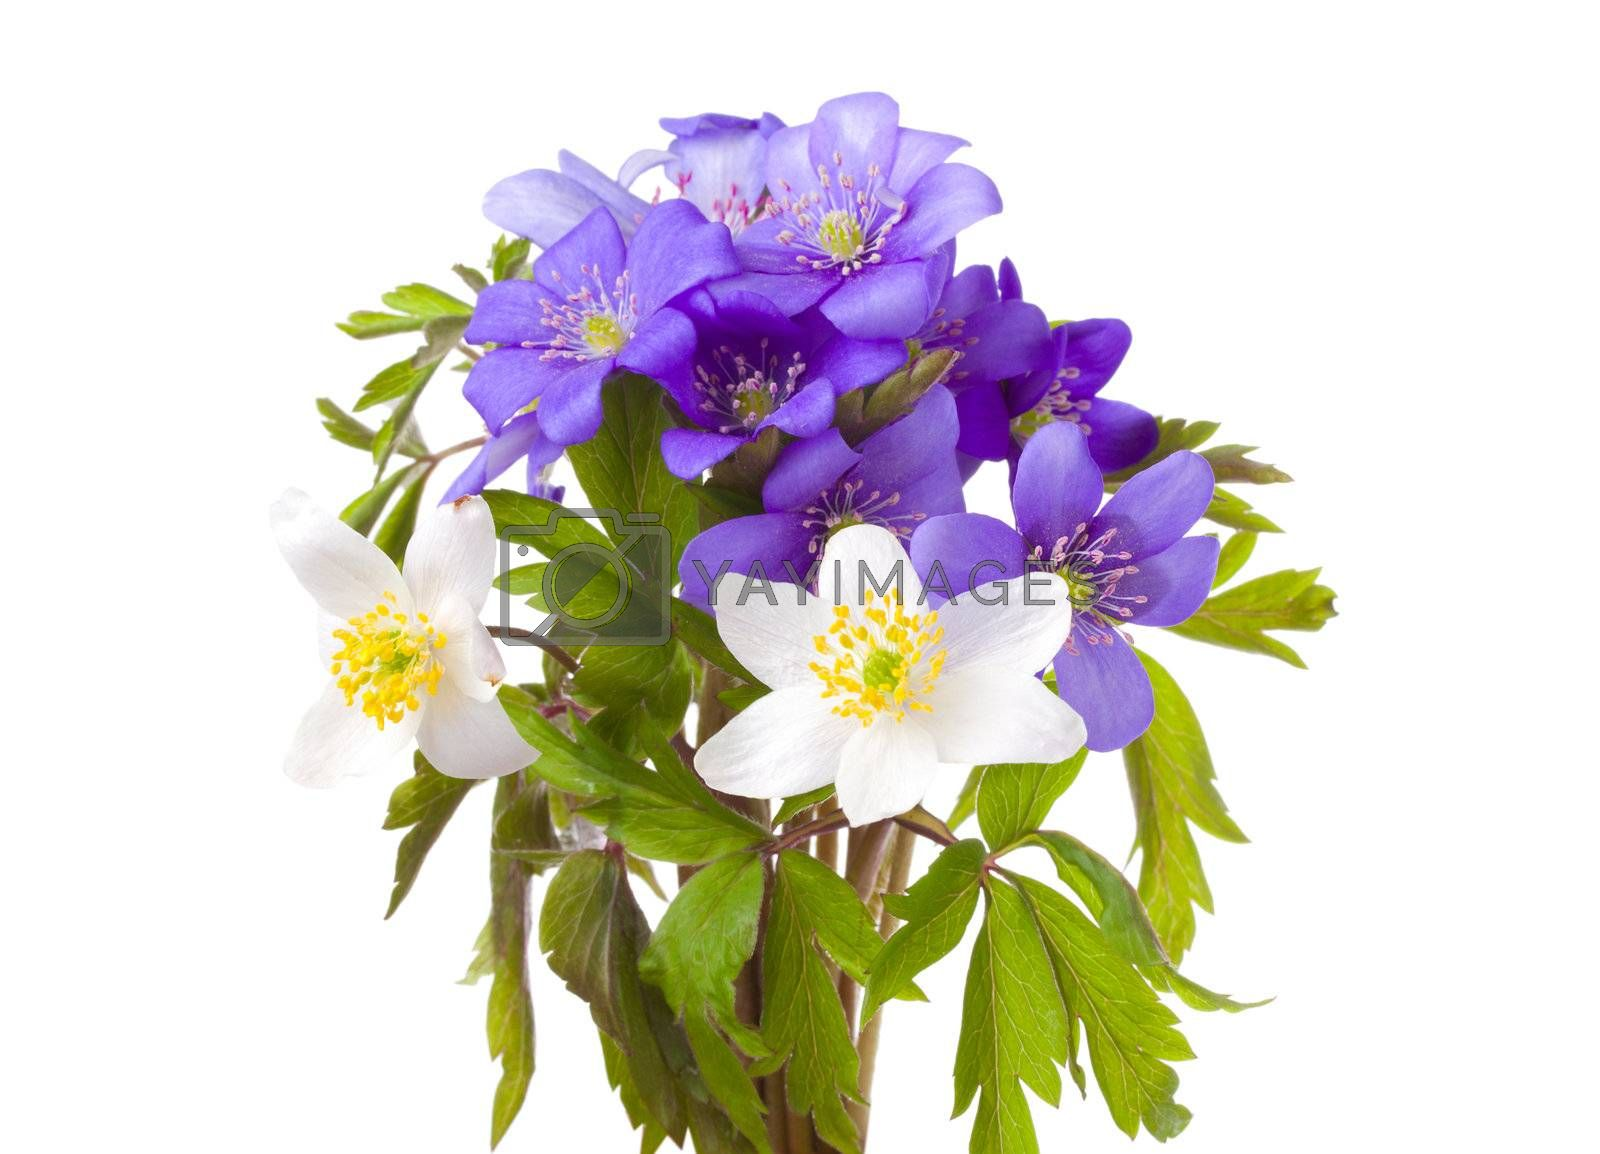 close-up bouquet from hepatica and anemone flowers, isolated on white